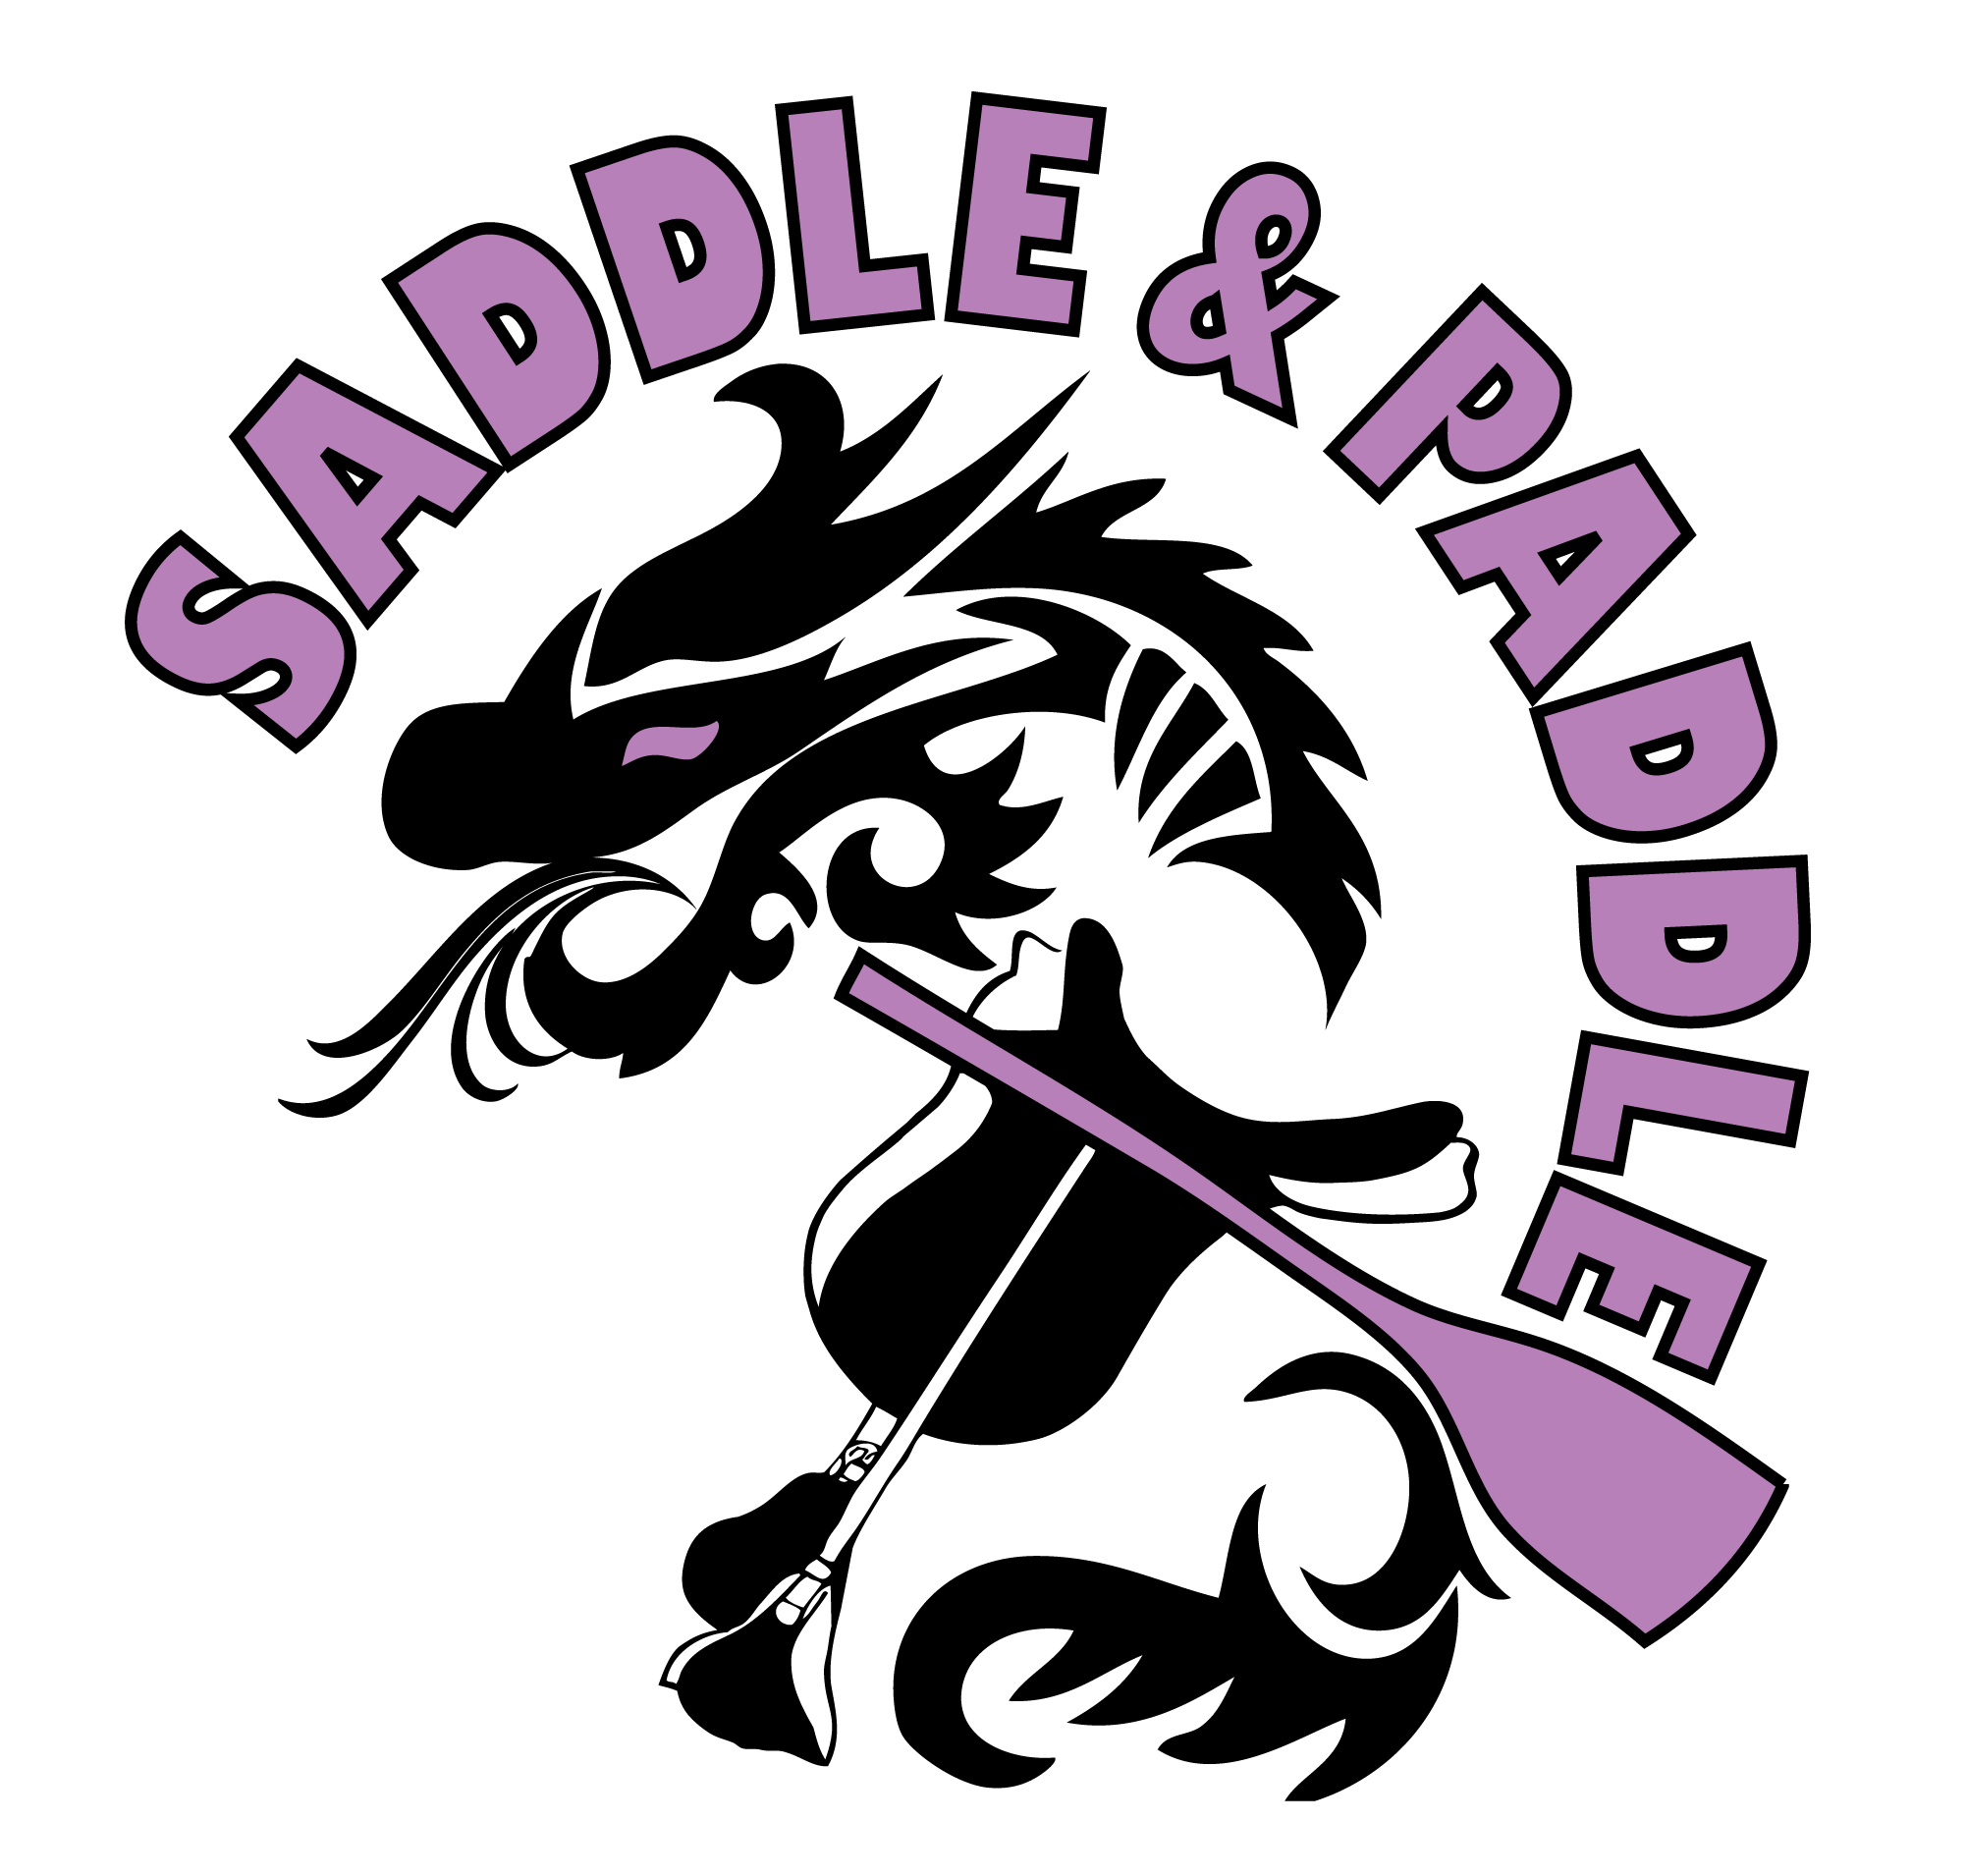 Saddle & Paddle Logo Vector Art 2016_png-01